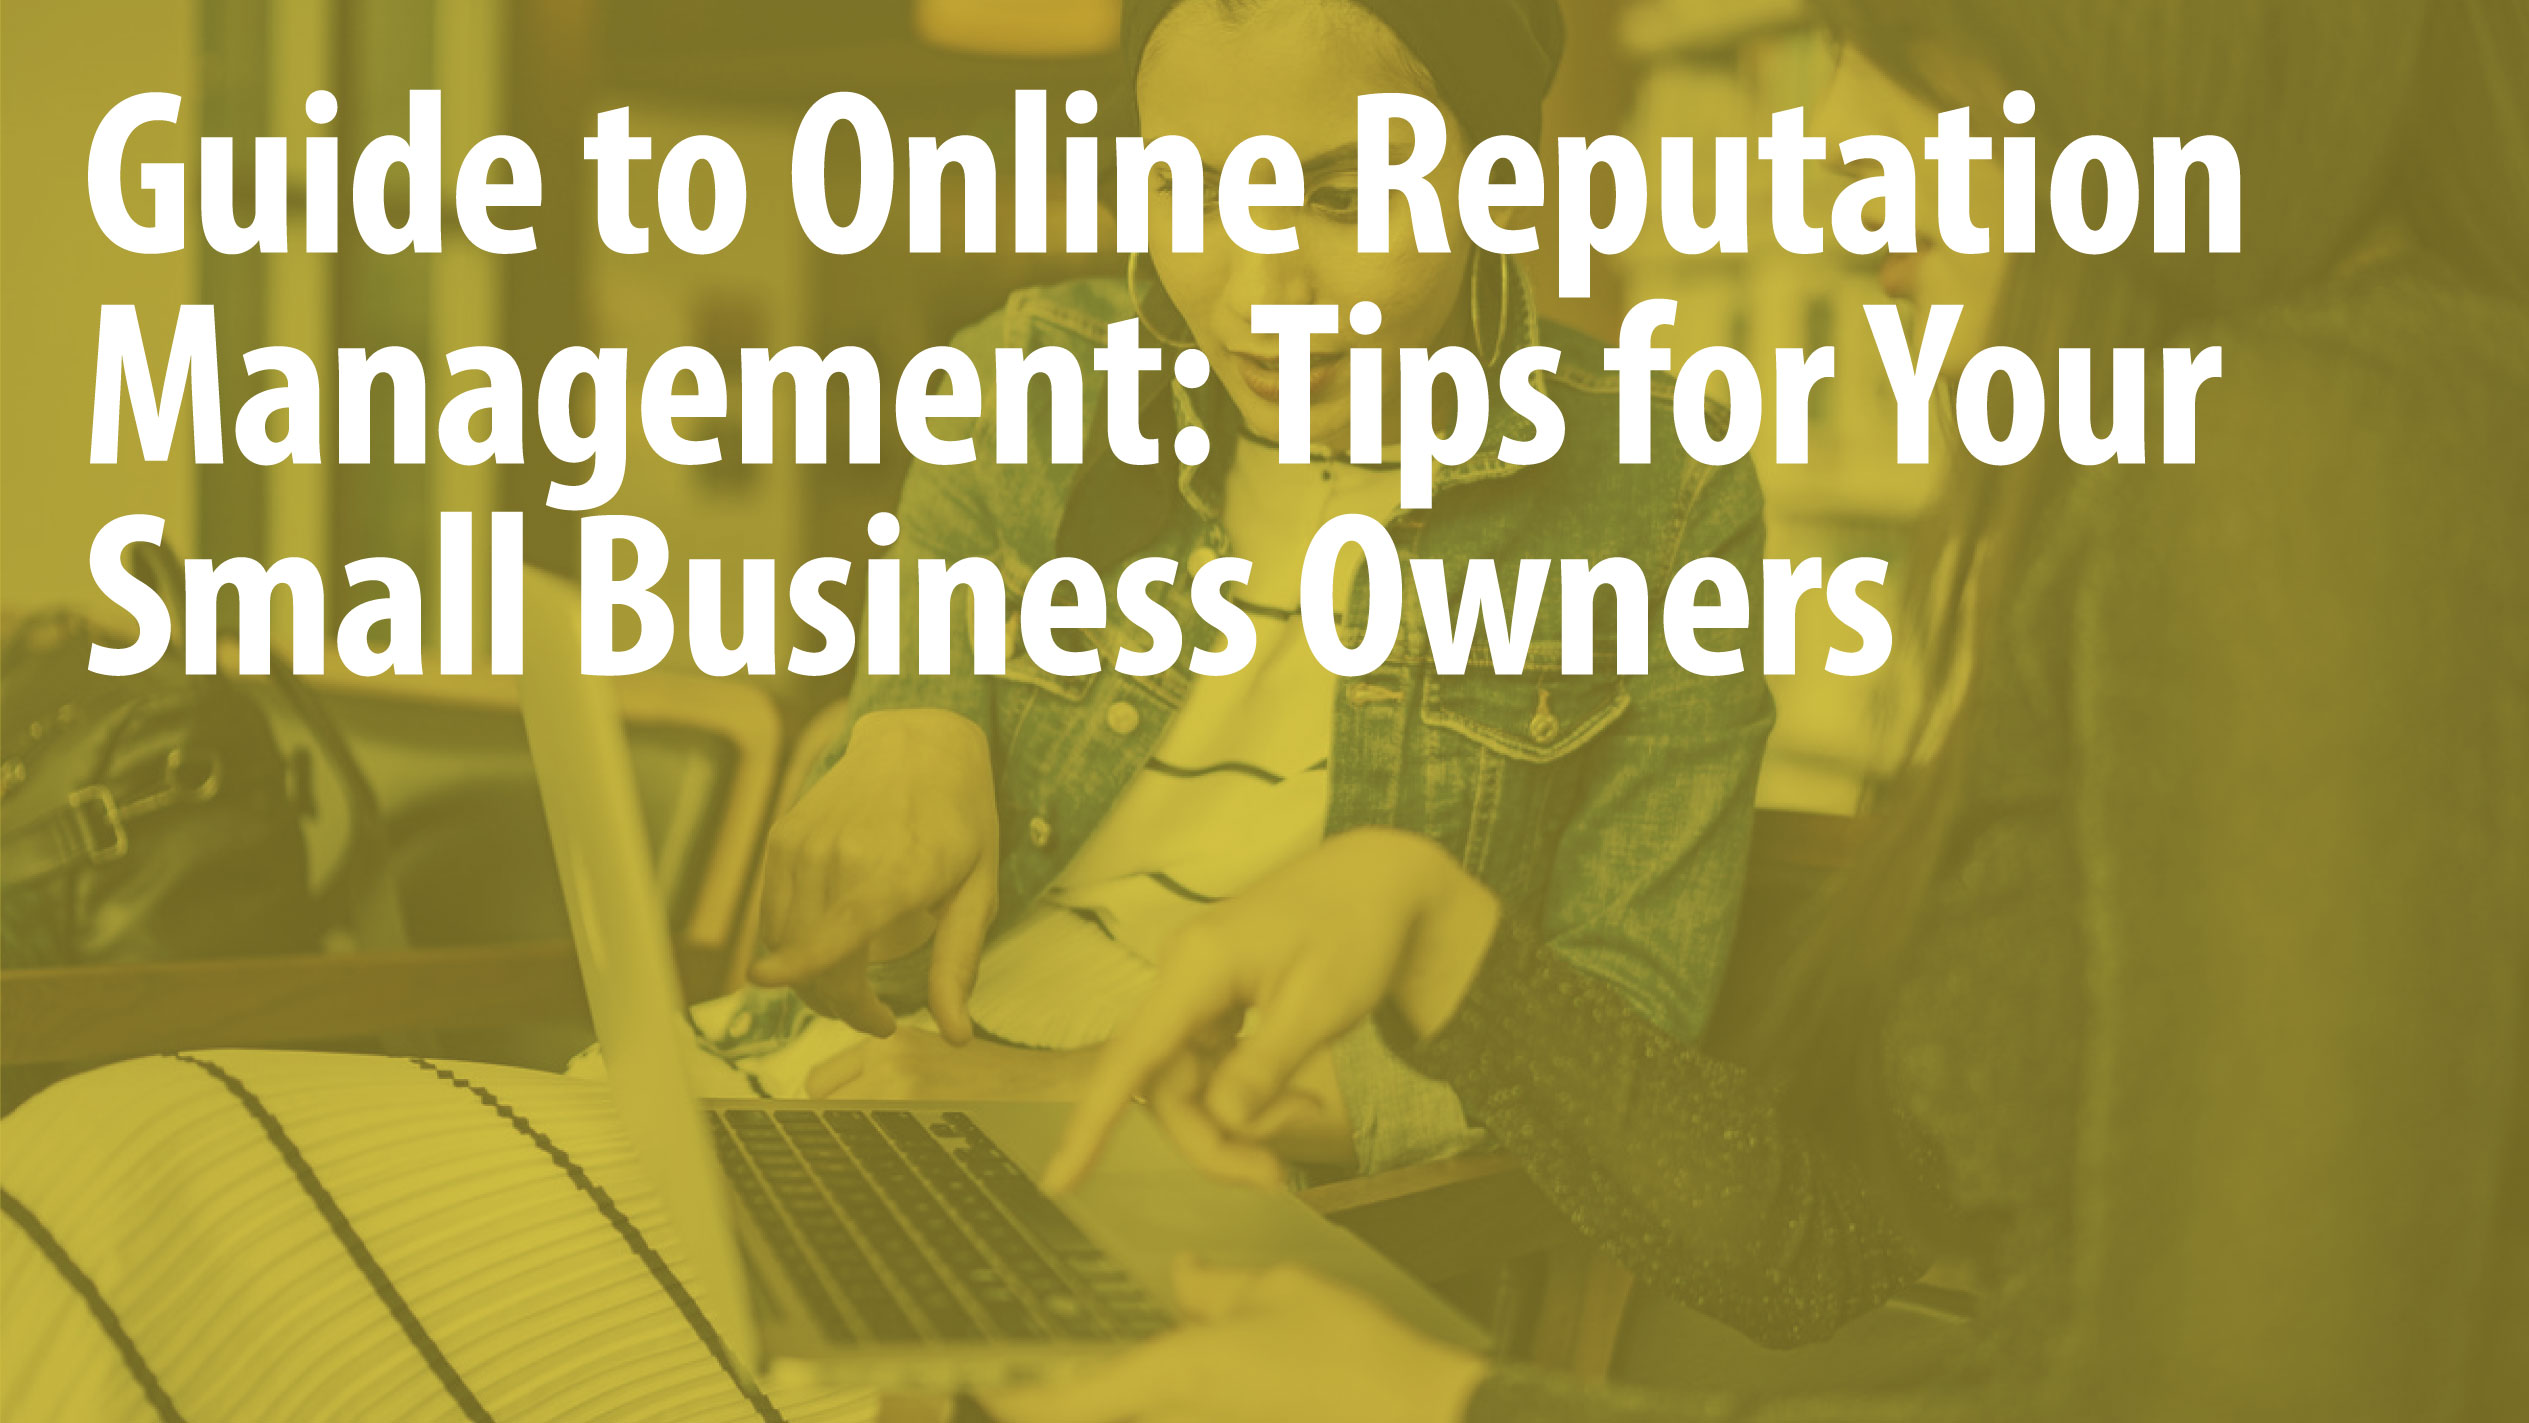 Guide to Online Reputation Management: Tips for Your Small Business Owners